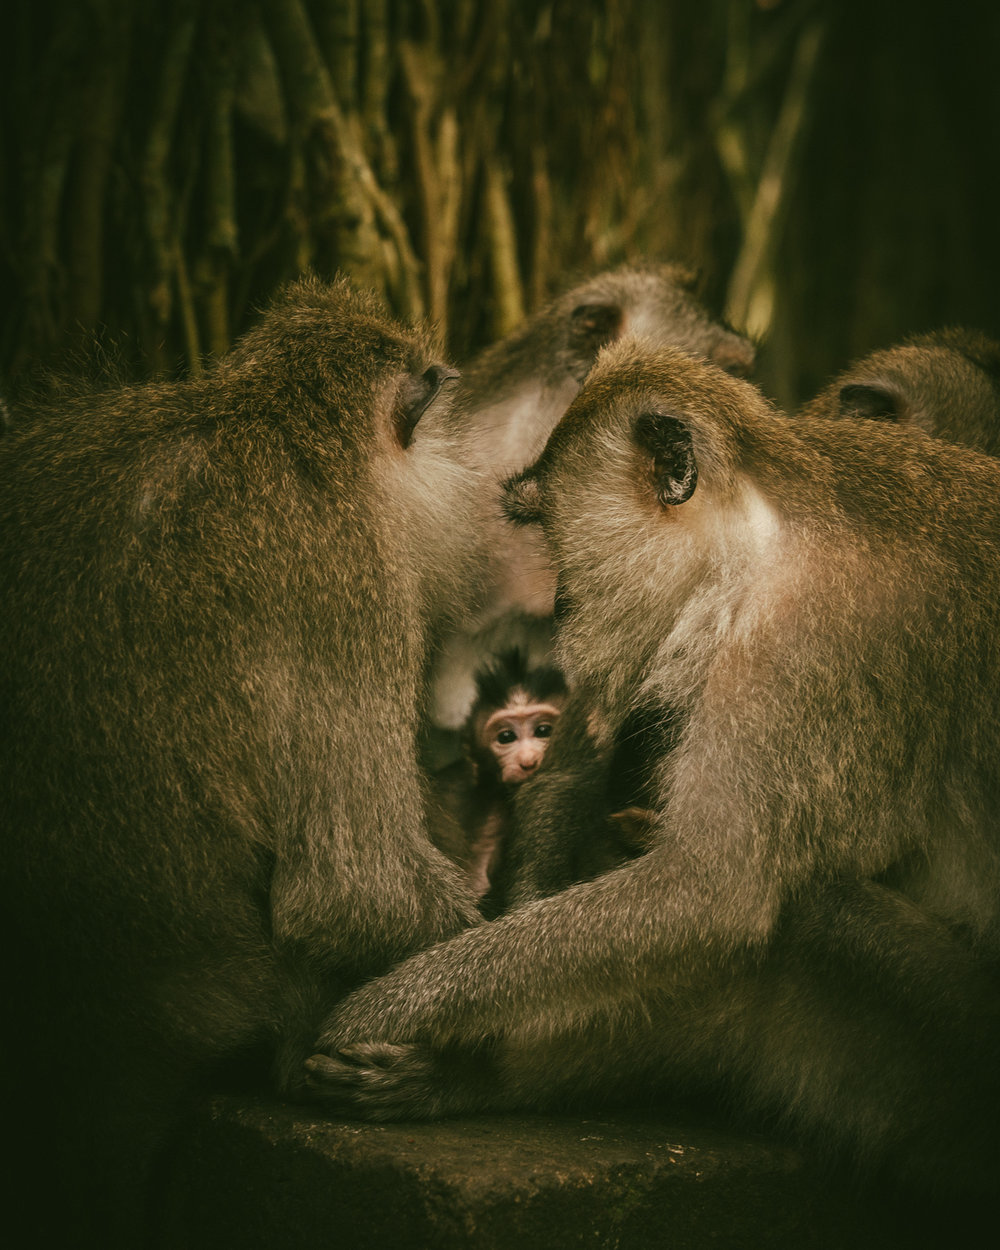 MONKEY FOREST: a new resident.